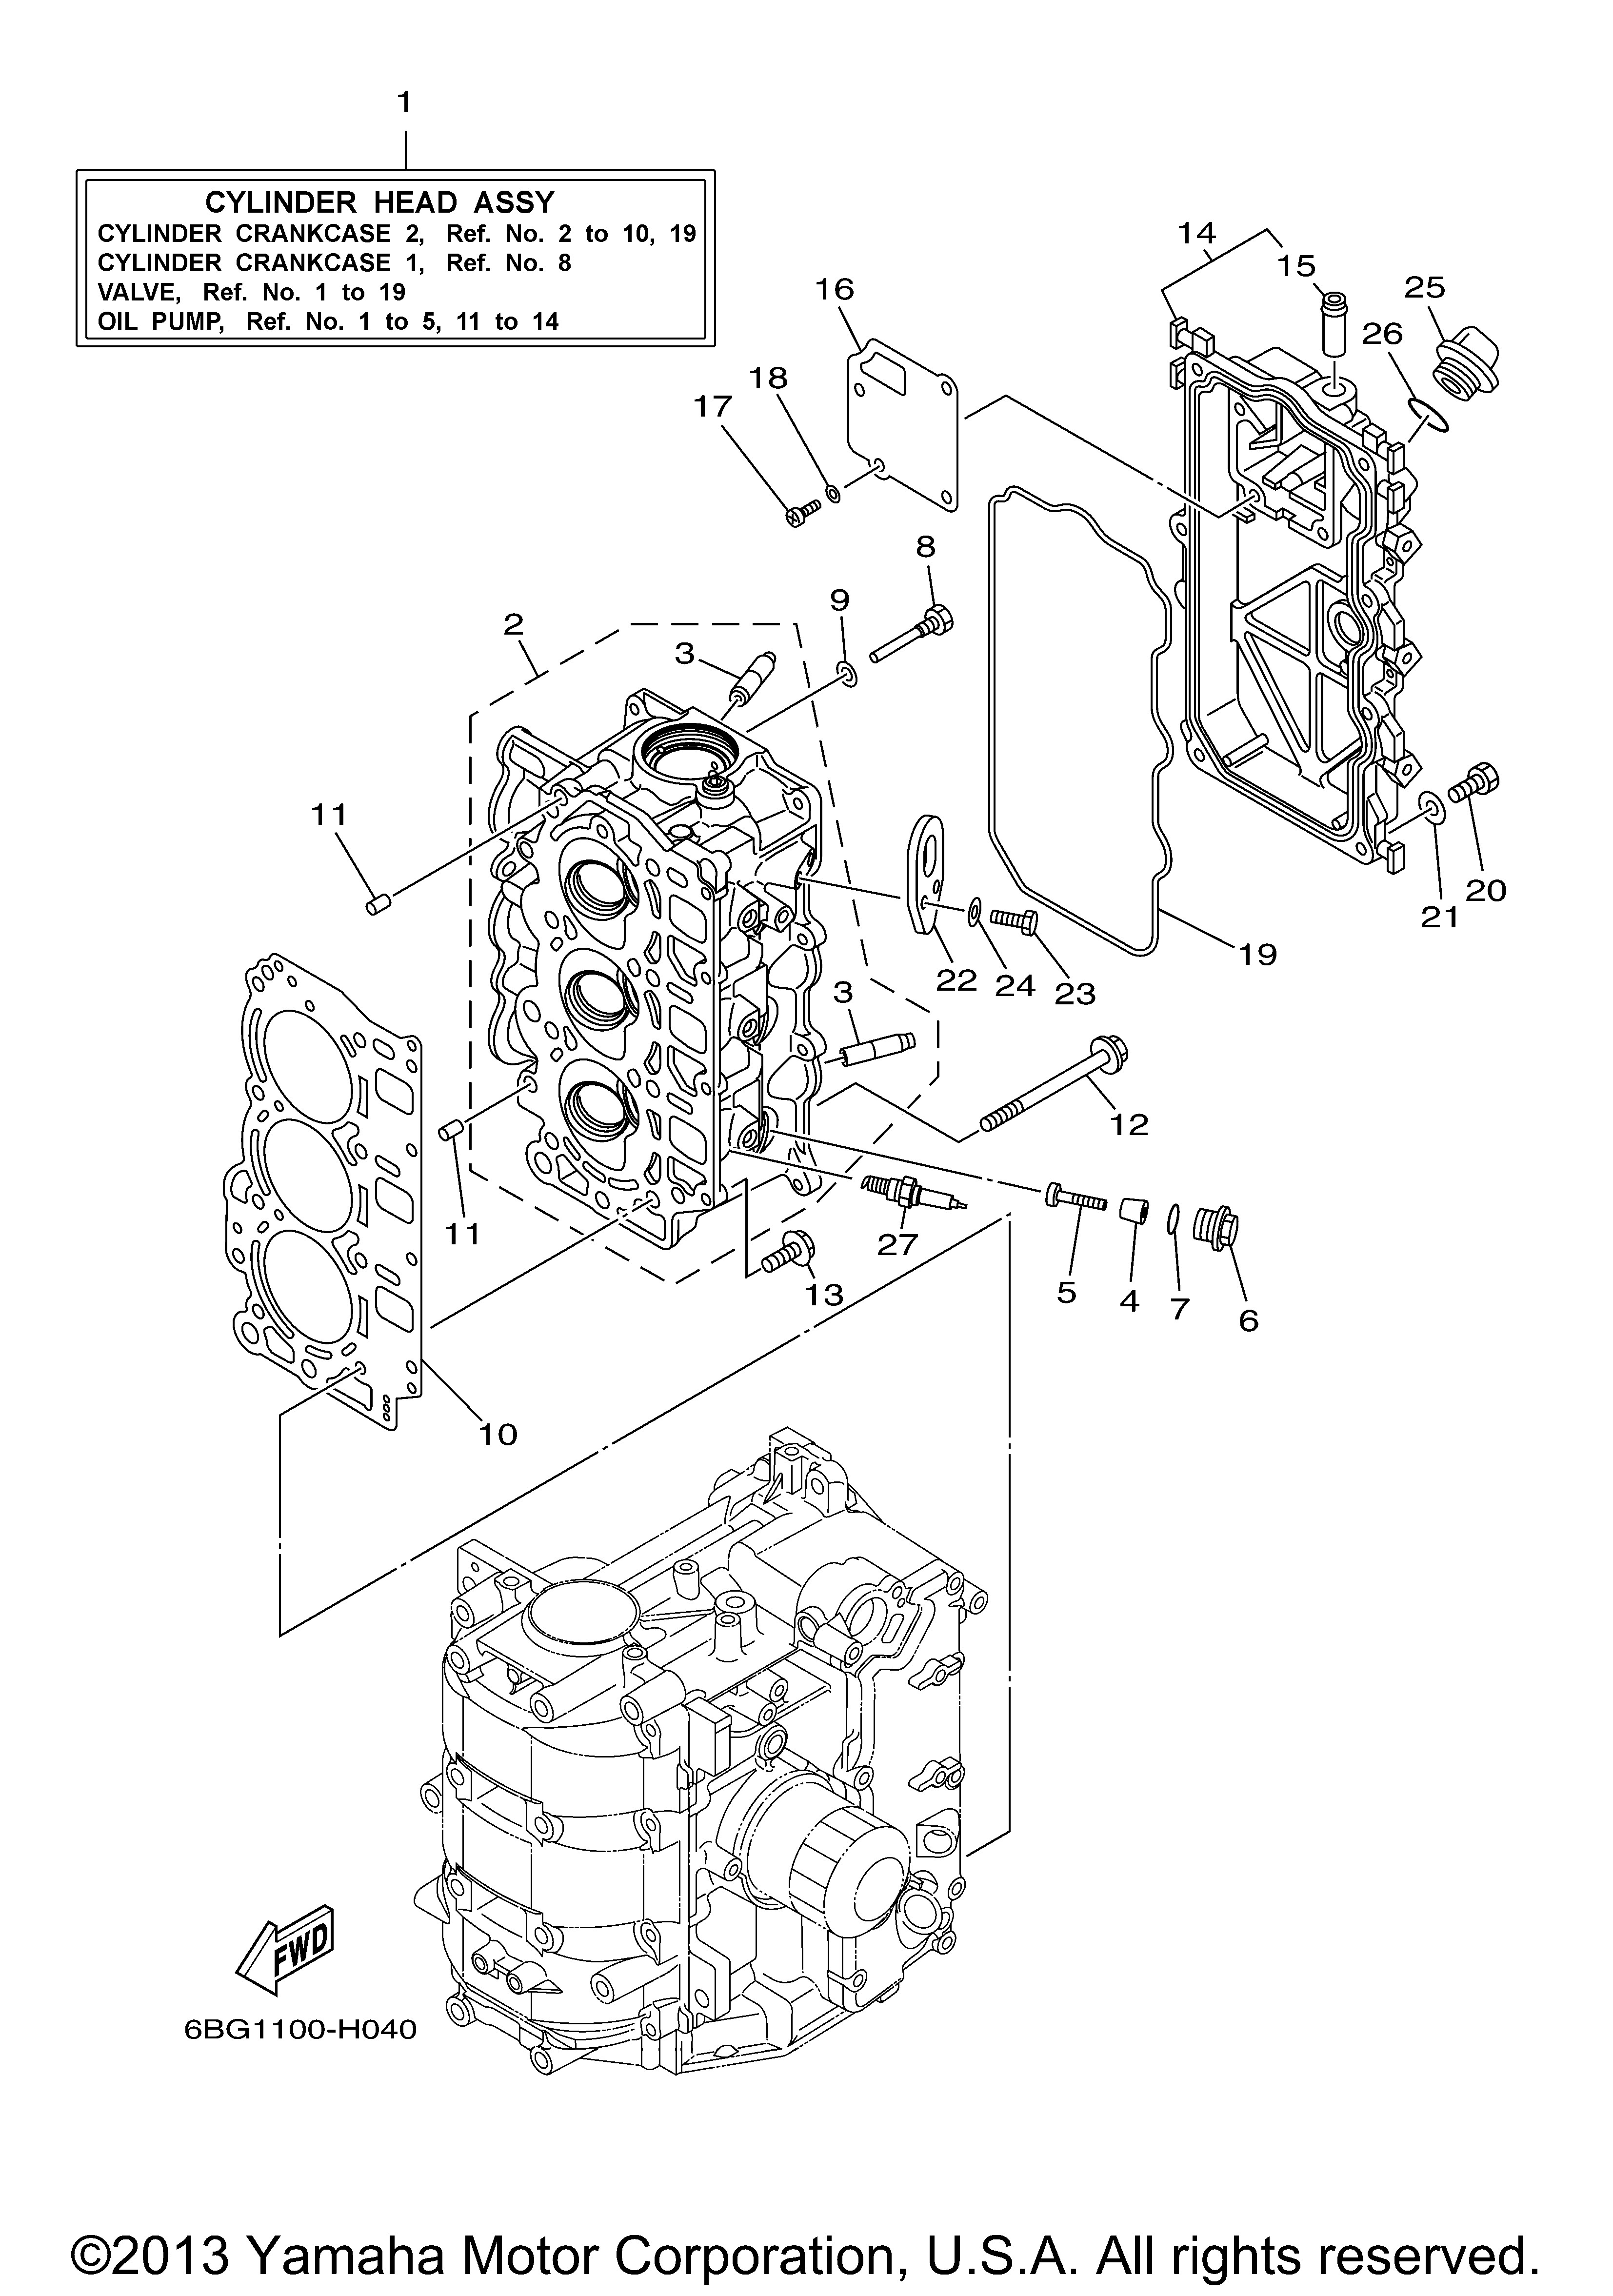 6 Cylinder Engine Diagram Yamaha Outboard 40 Hp F40la Of 6 Cylinder Engine Diagram